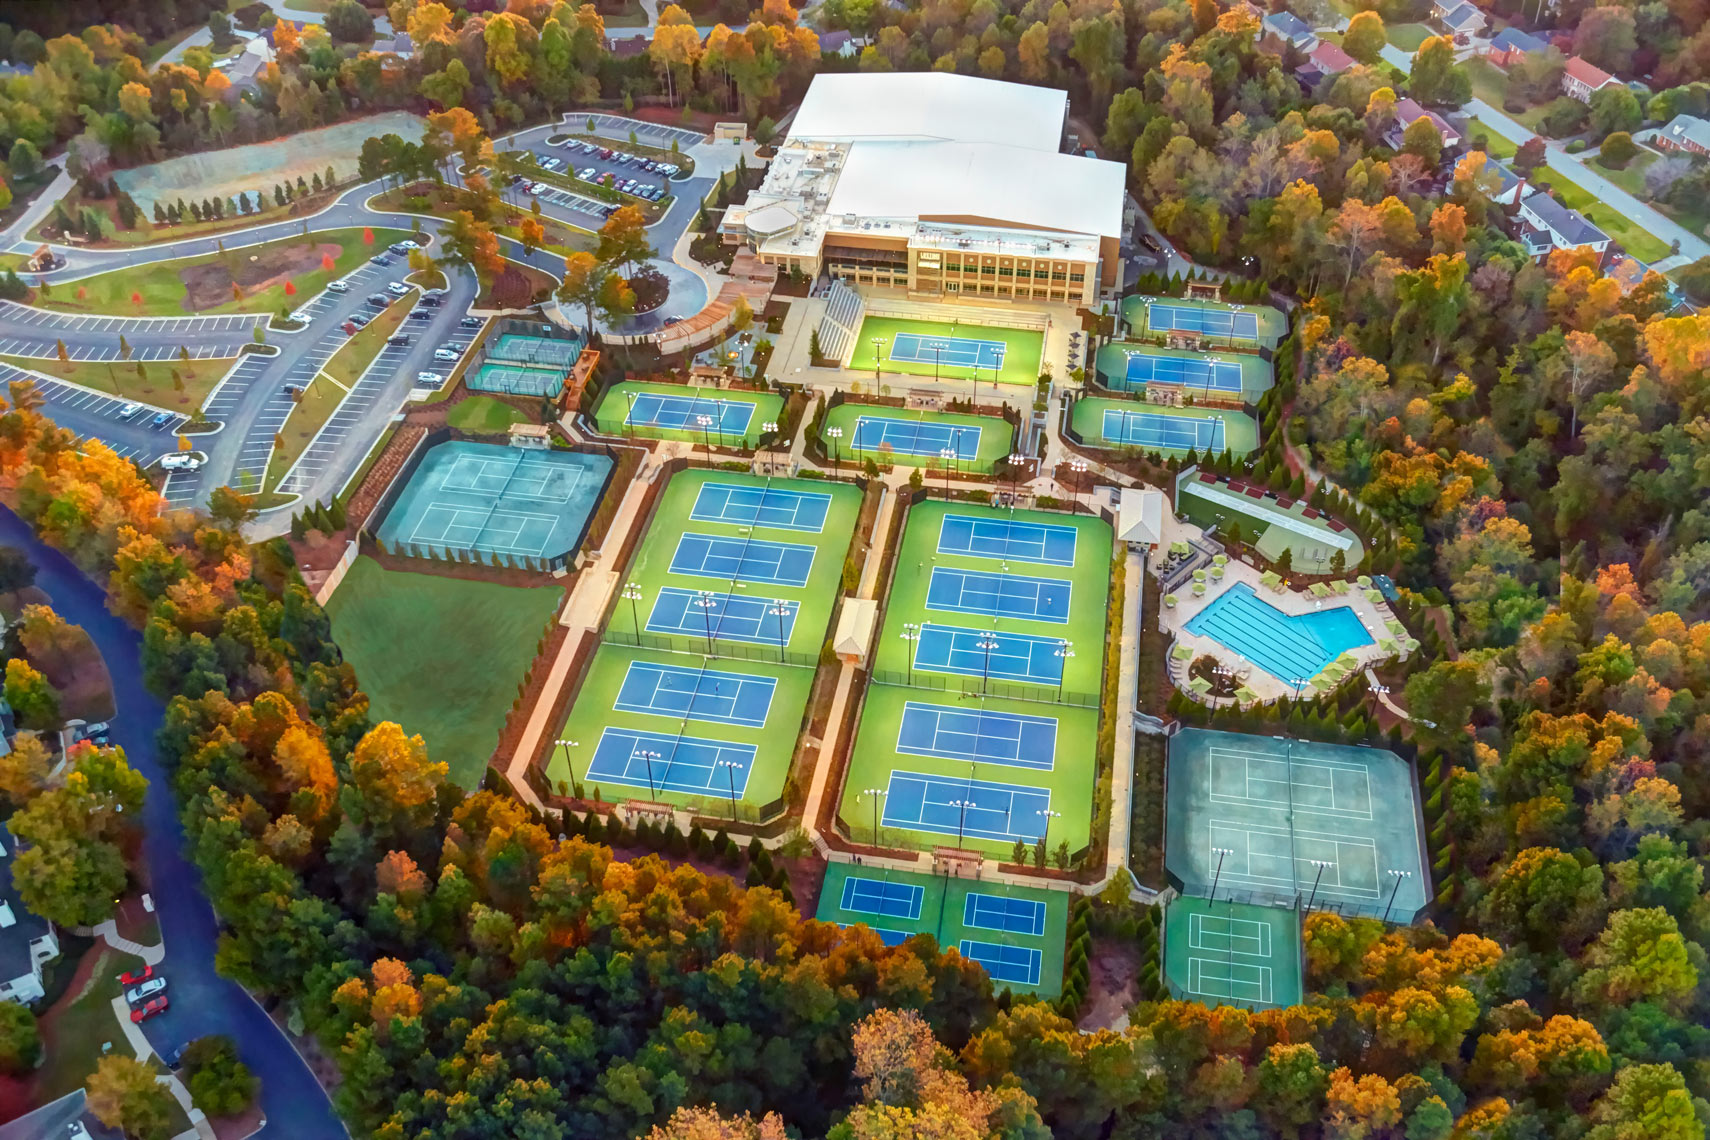 Life Time Fitness/Drone view/26 tennis courts/architectural photo